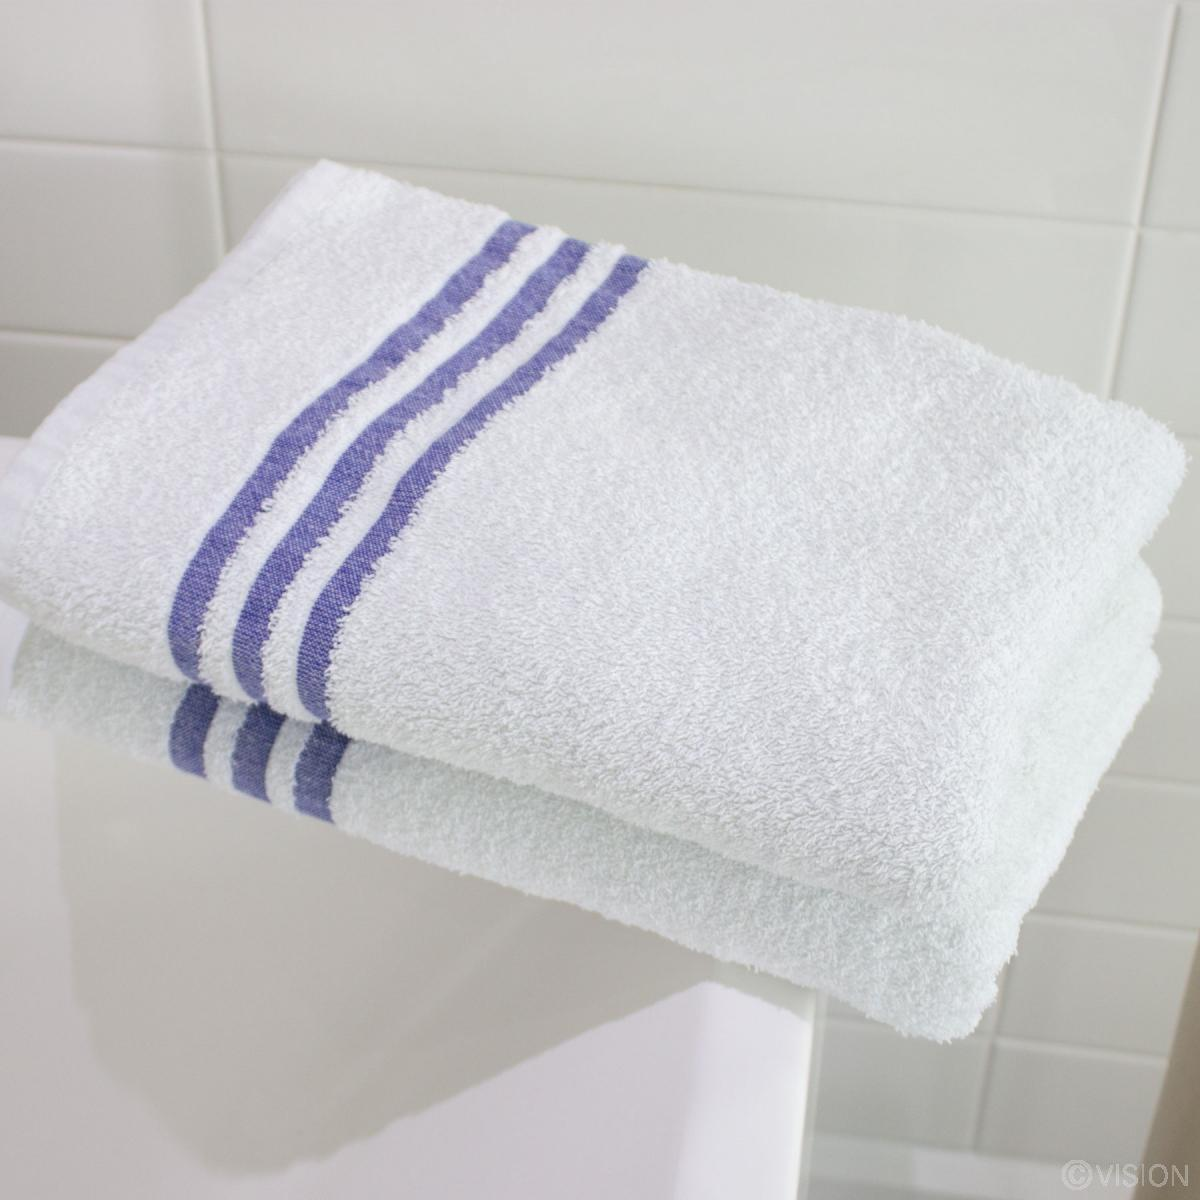 View Bath Sheets Collection Details